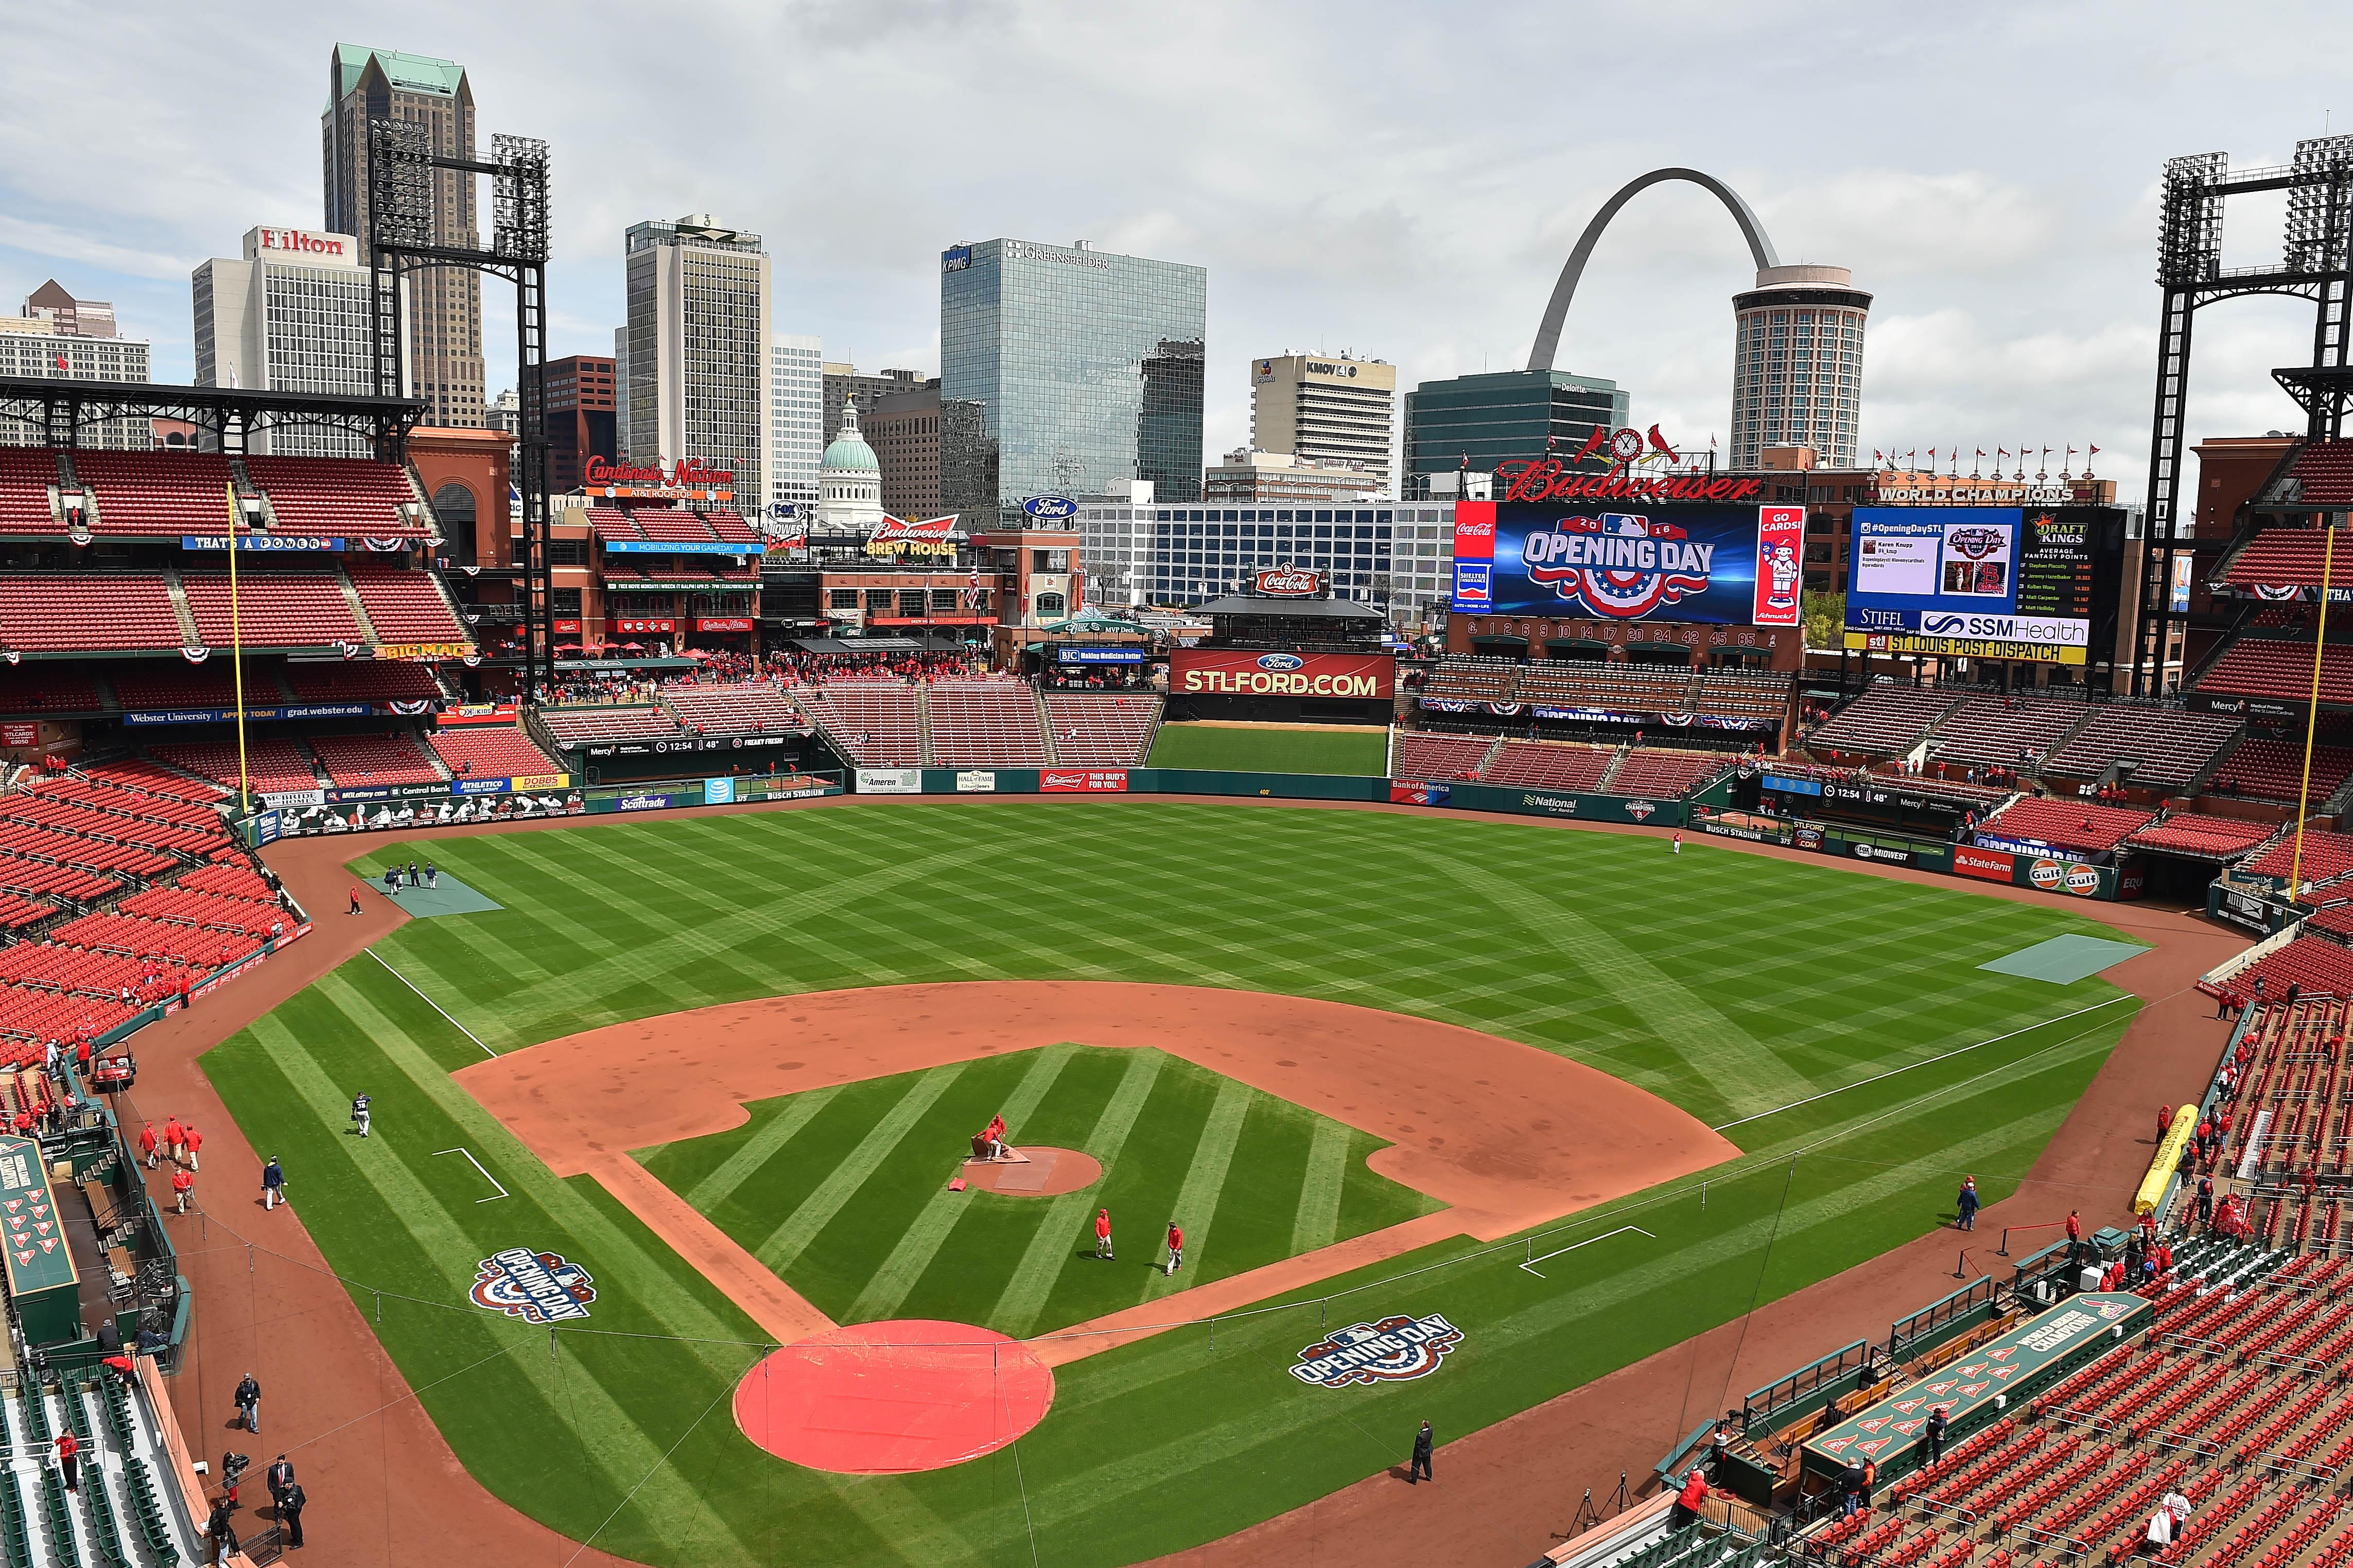 9244948-mlb-milwaukee-brewers-at-st.-louis-cardinals-1